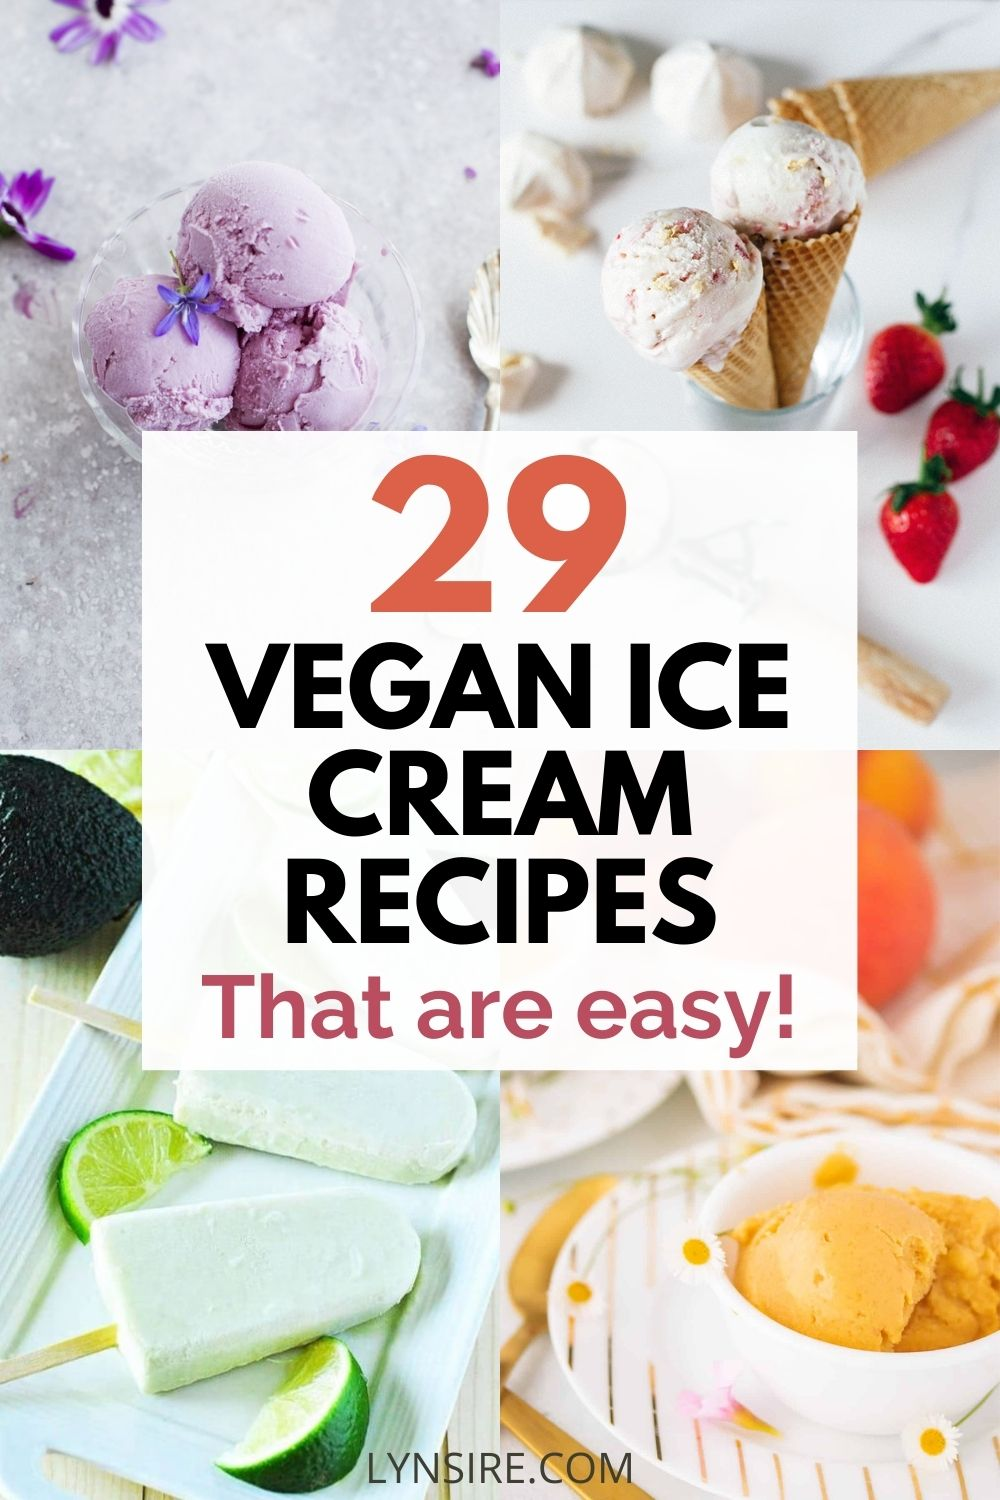 Vegan ice cream recipe easy